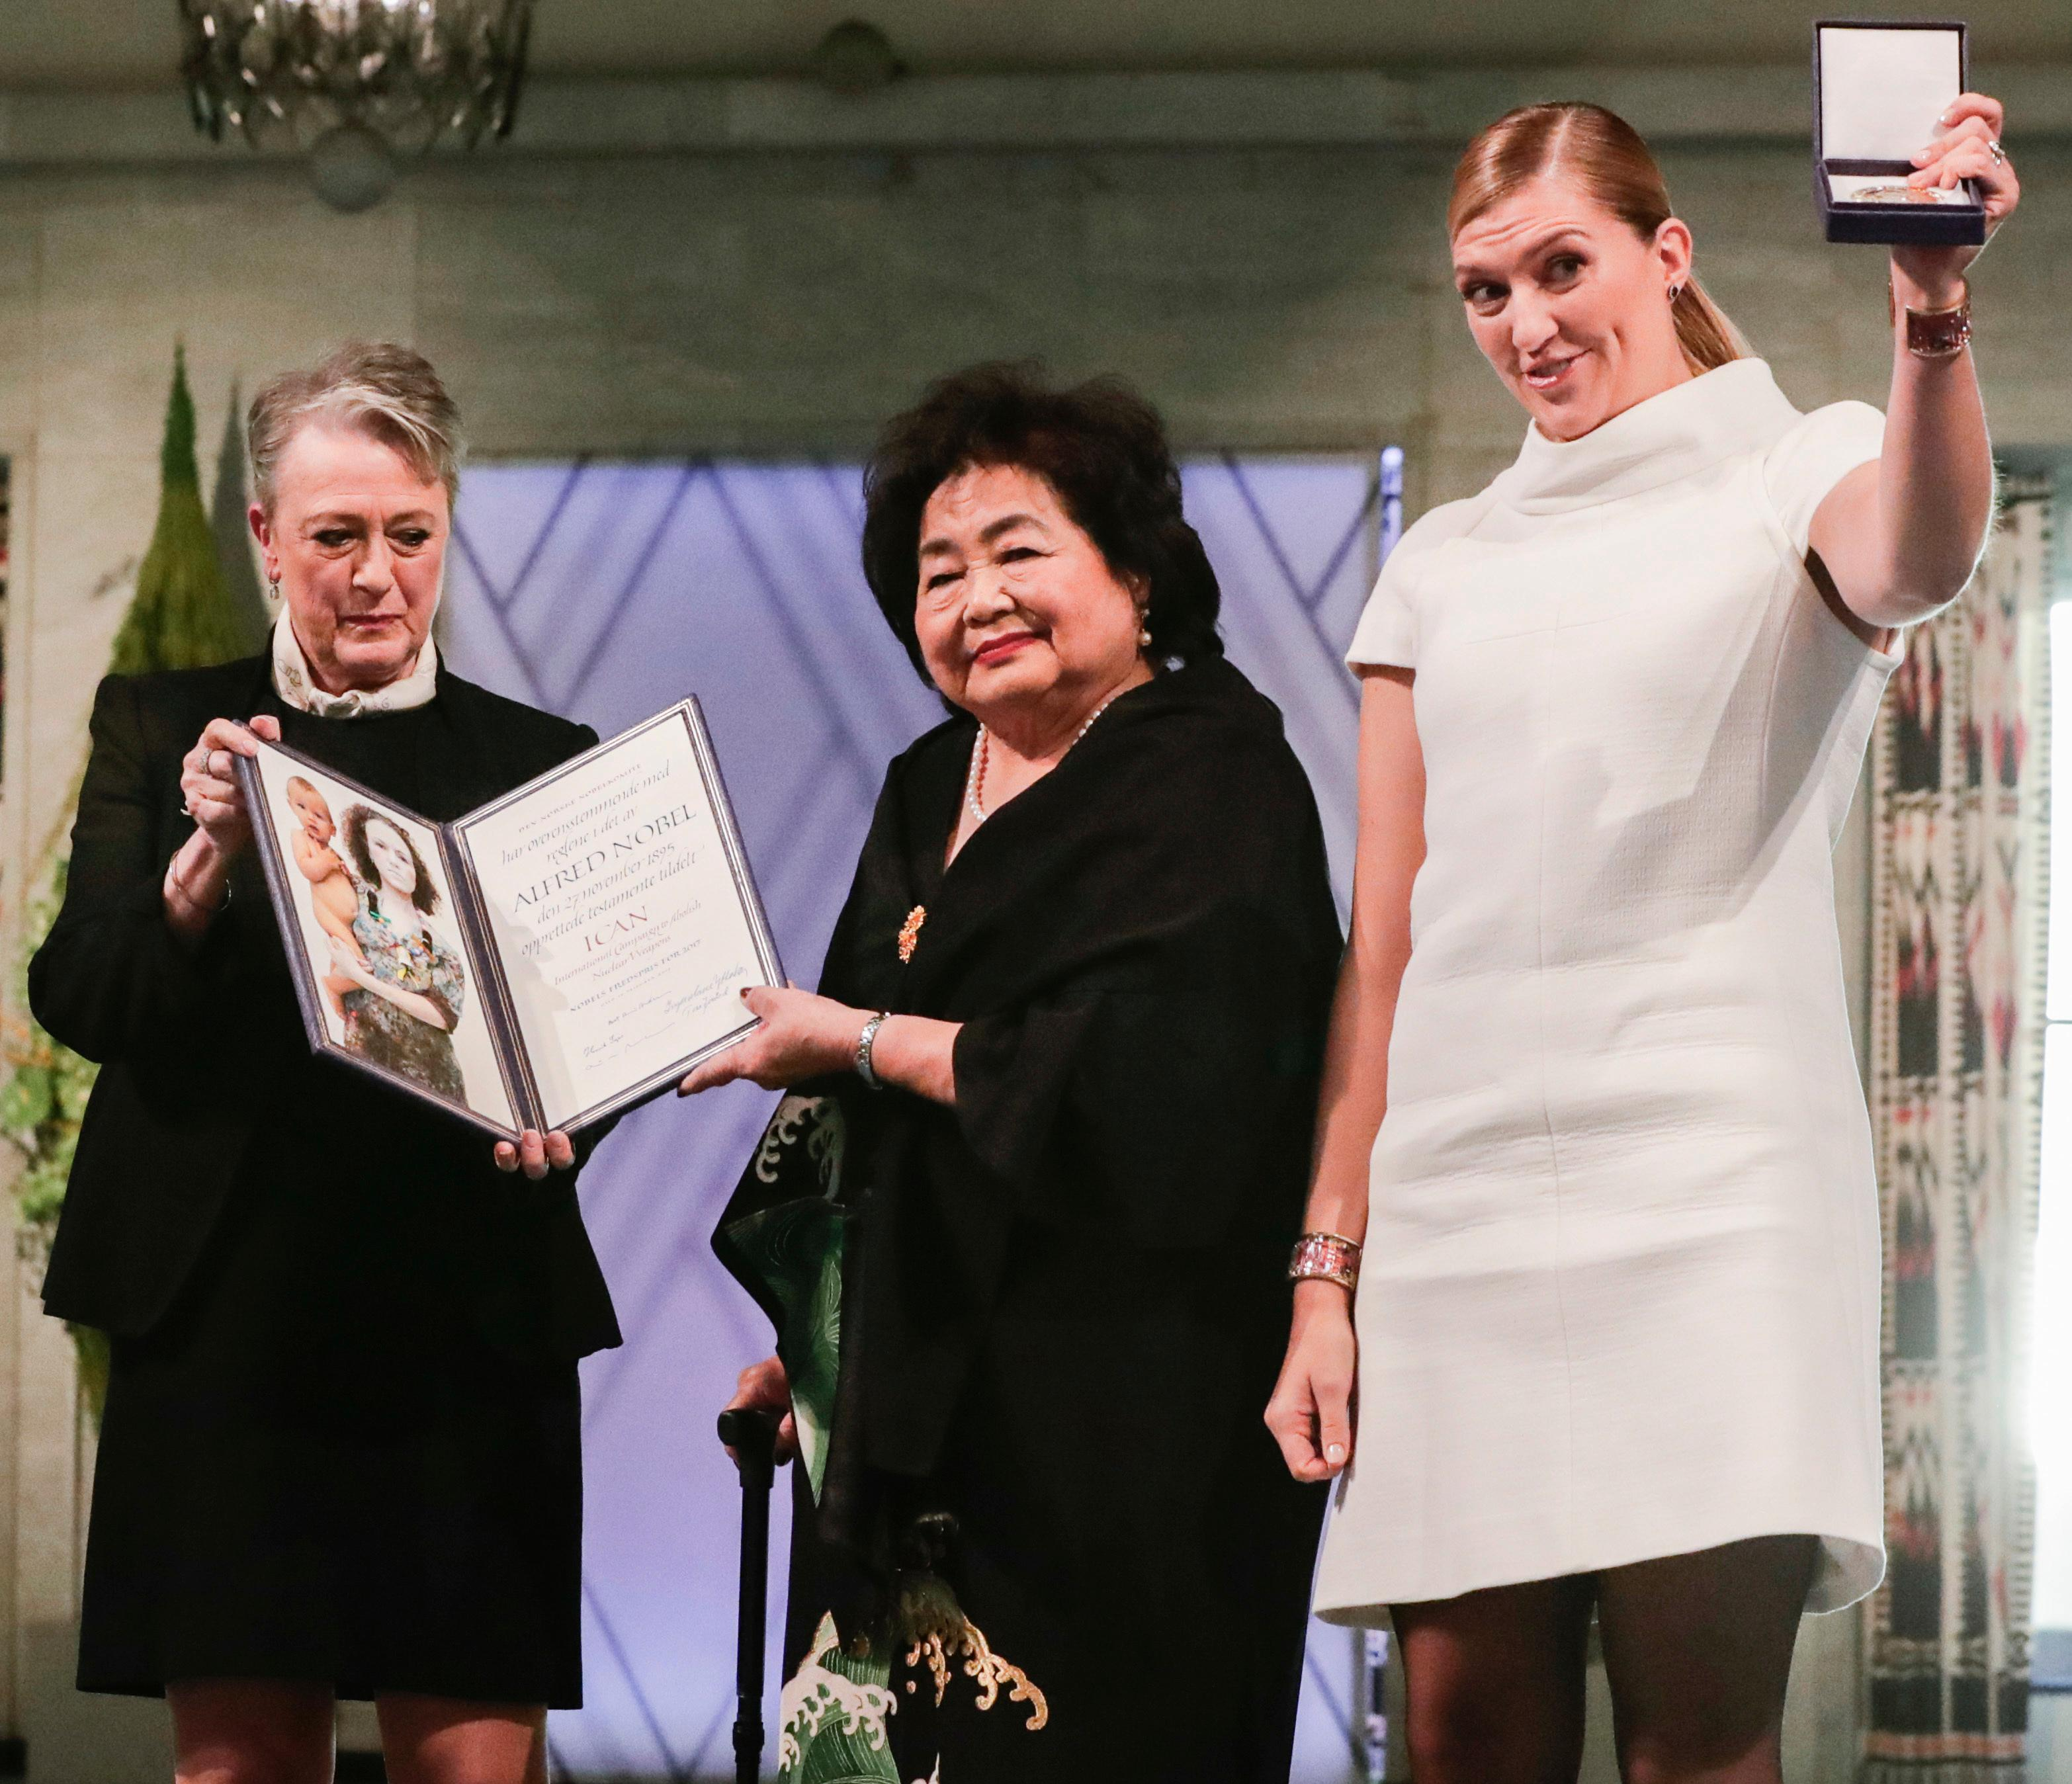 Oslo, Norway 20171210. Winners of the Nobel Peace Prize 2017, representatives of the International Campaign to Abolish Nuclear Weapons (ICAN), with leader of the Nobel committee Berit Reiss-Andersen, left, Hiroshima Survivor Setsuko Thurlow and leader of ICAN Beatrice Fihn in the City Hall Oslo, Norway, Sunday Dec. 10, 2017.  ICAN are officially receive the Nobel Peace Prize award during a ceremony. (Berit Roald/ NTB scanpix via AP)